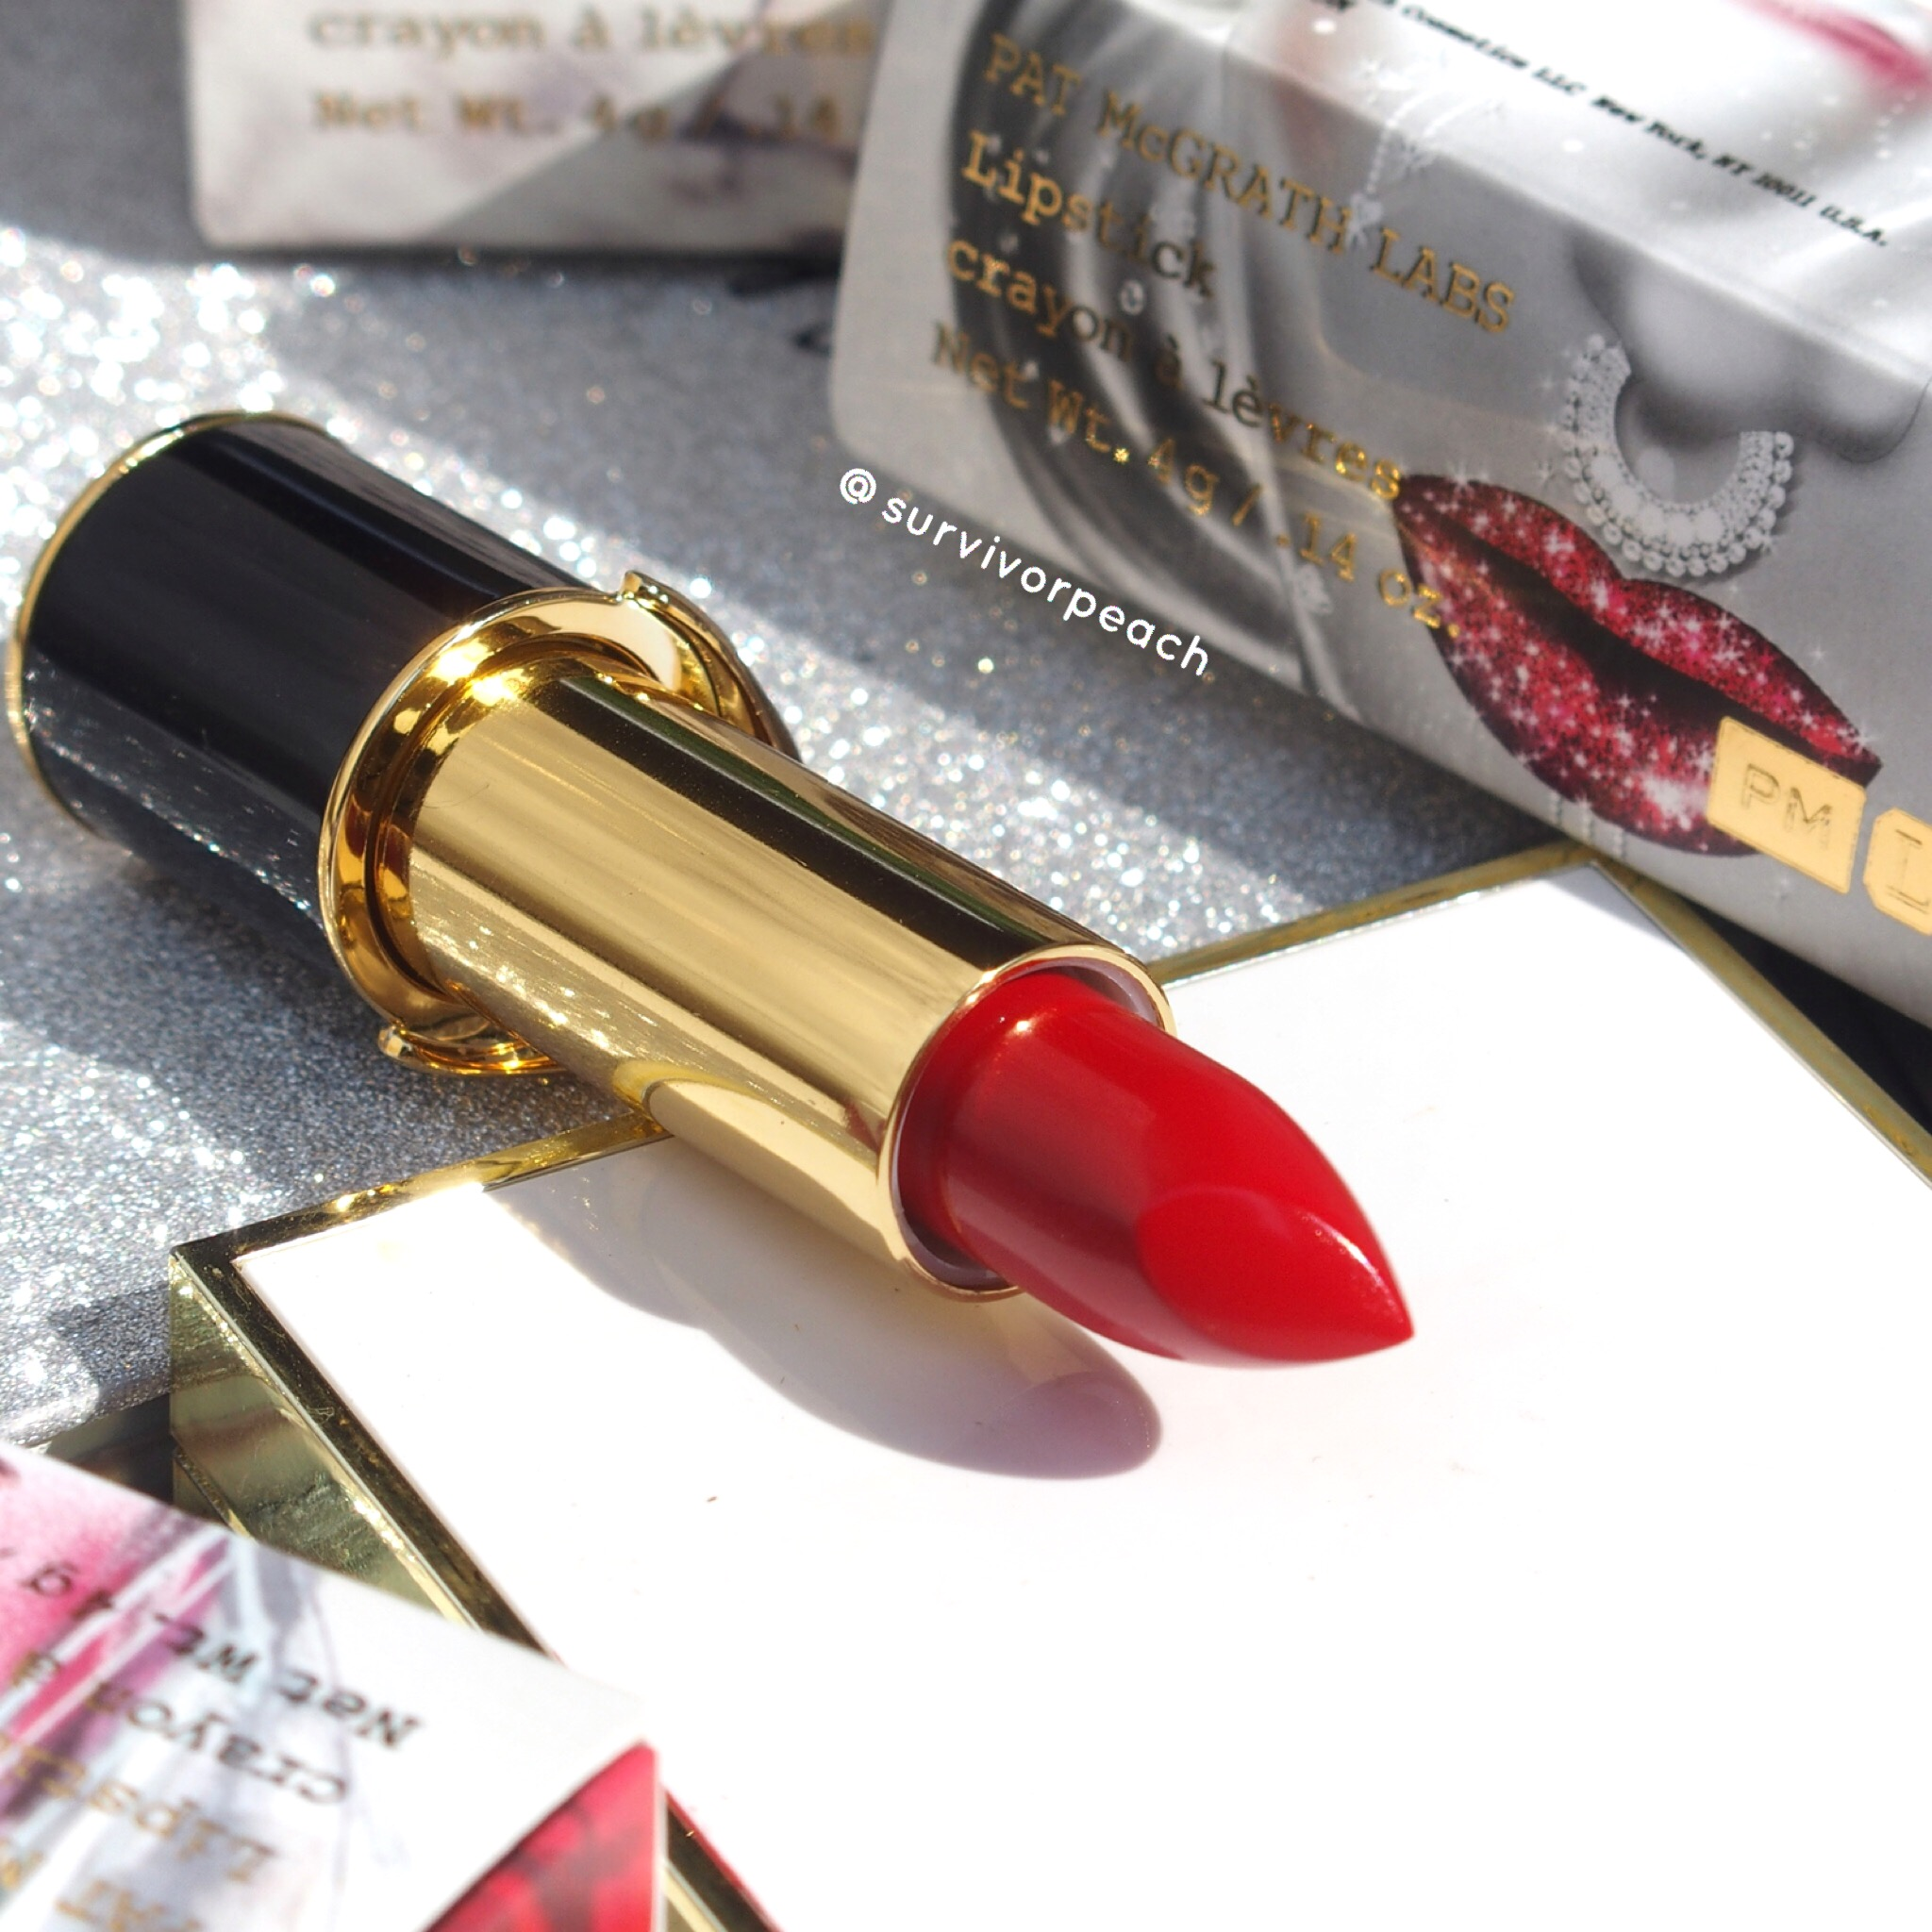 Pat McGrath Labs Luxe Trance Lipsticks in shade McGrath Muse